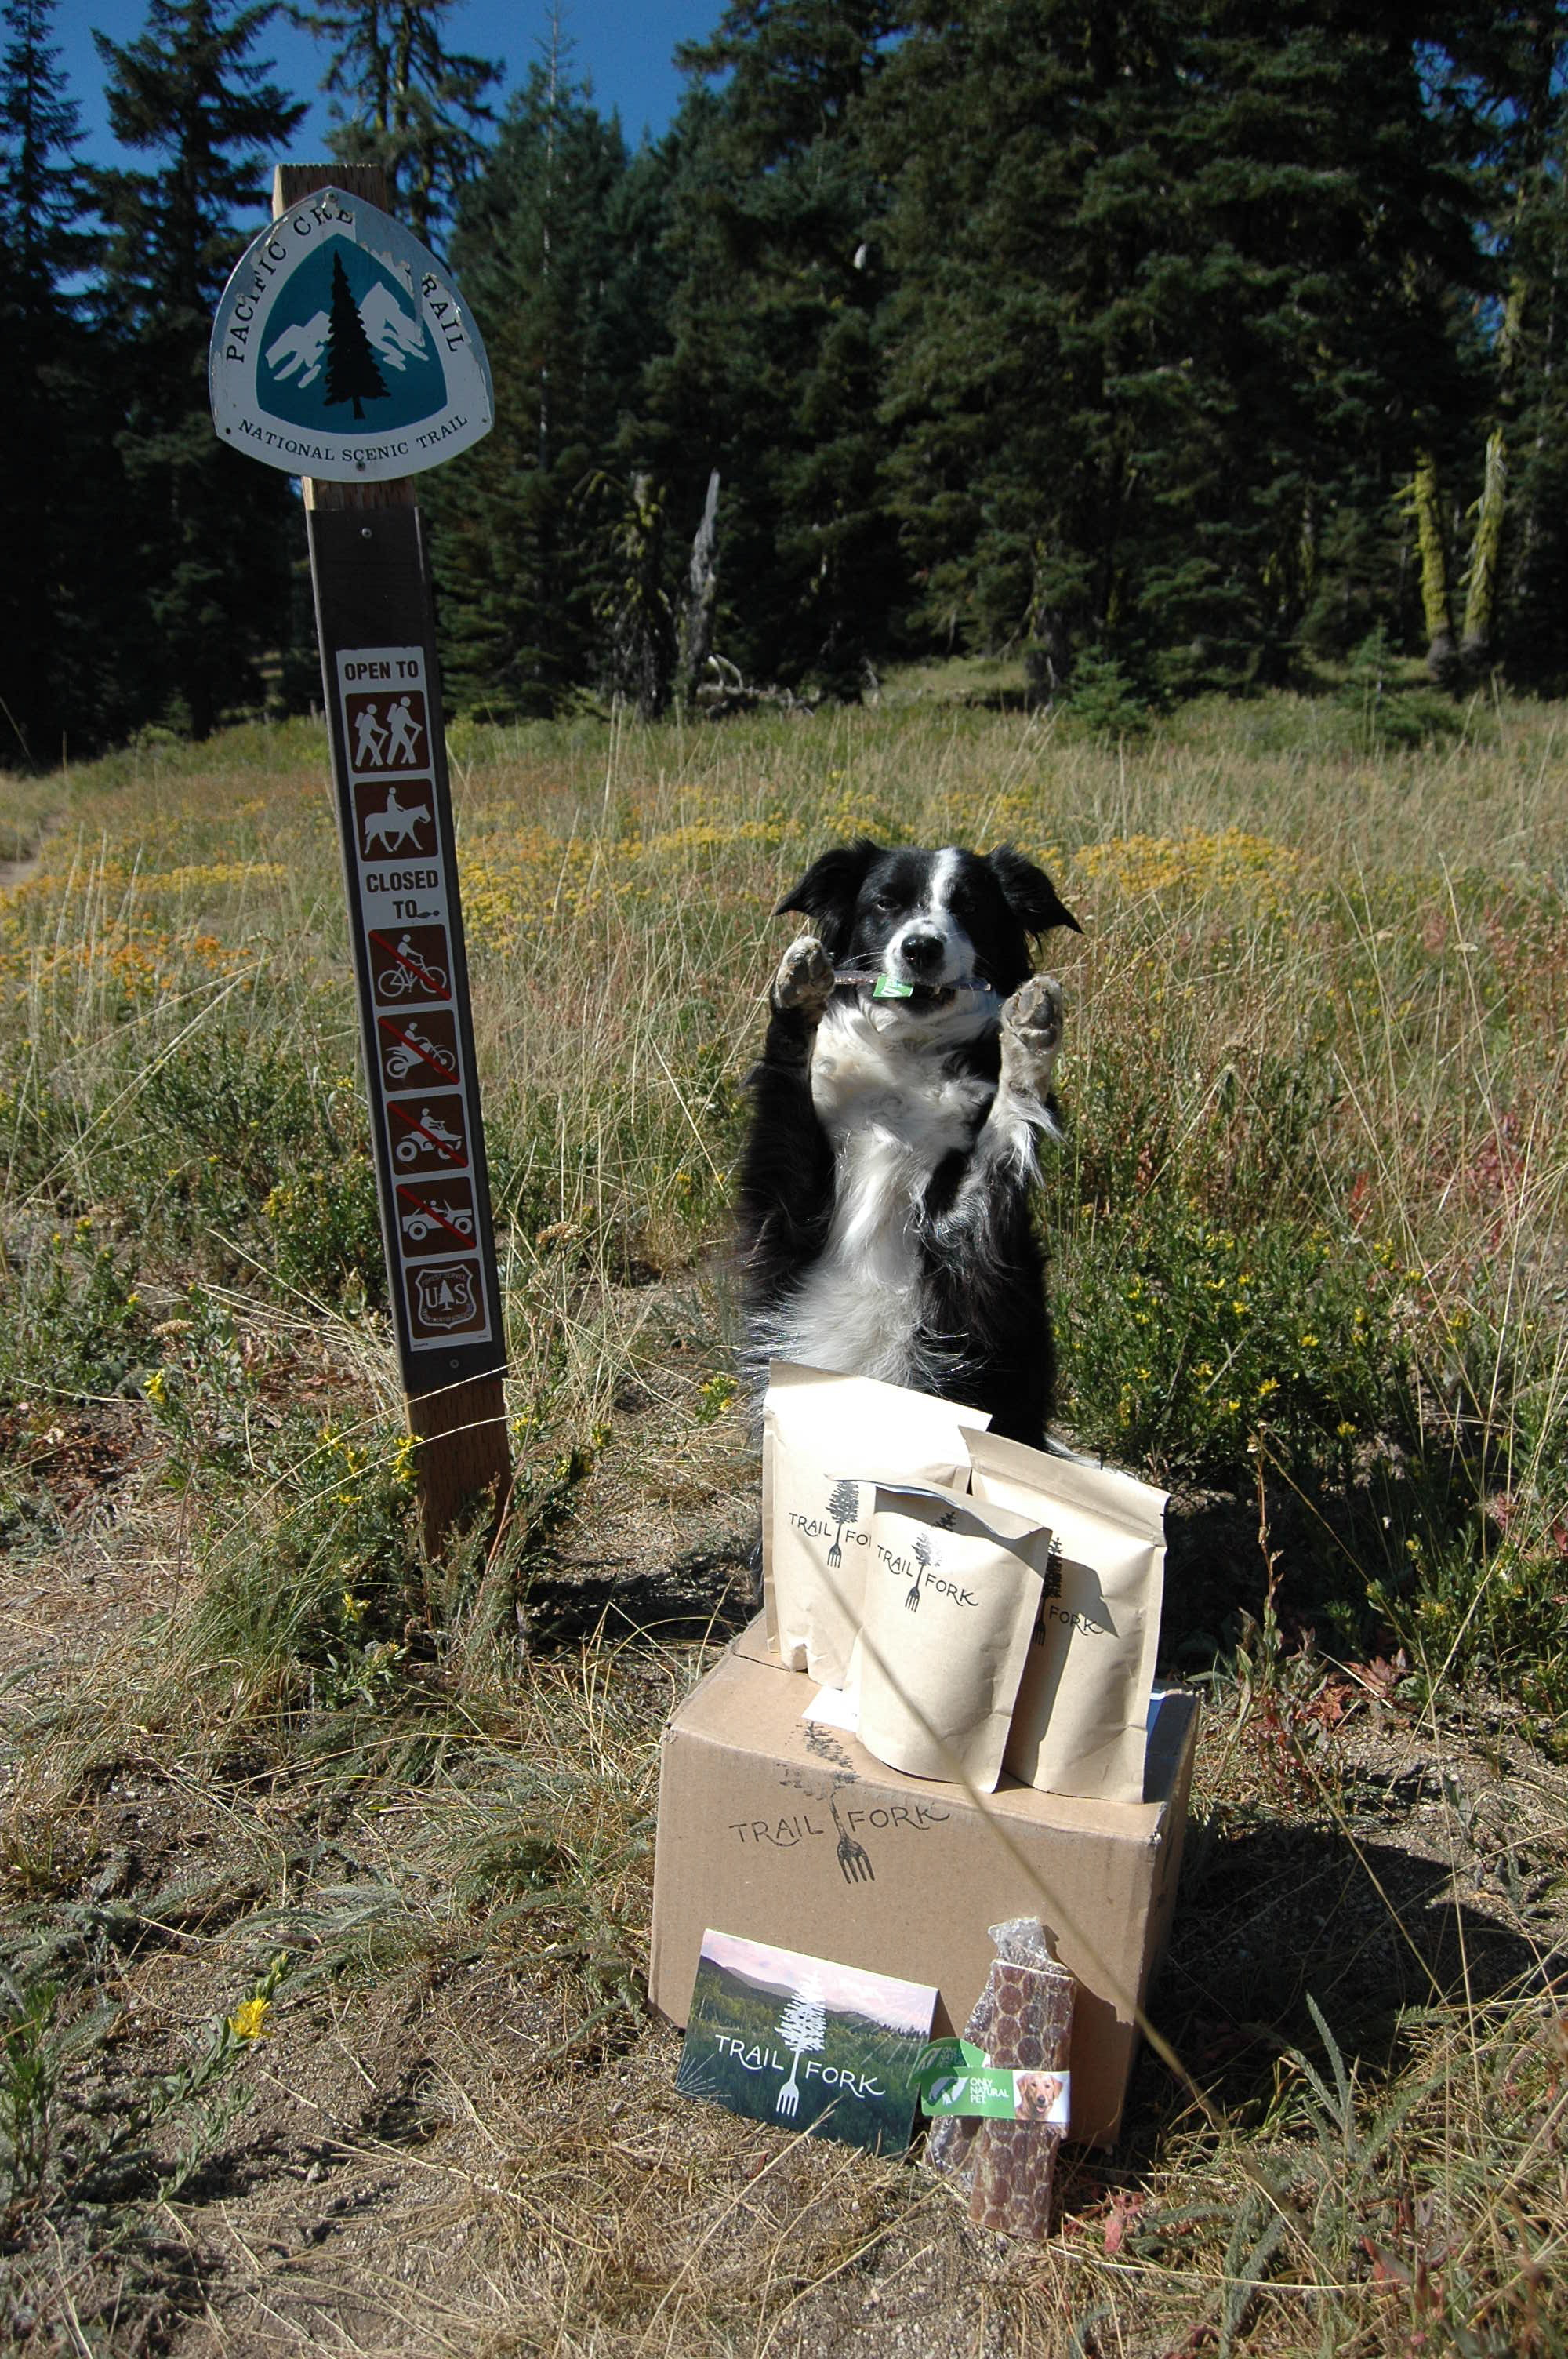 Trail Fork - Health Environmentally Conscious trail food for people!While on trail, the fine folks at Trail Fork, who strive to bring sustainable, eco-friendly pre-made backpacker meals to back country adventurers will be sending us out some of their delicious meals to trail test!